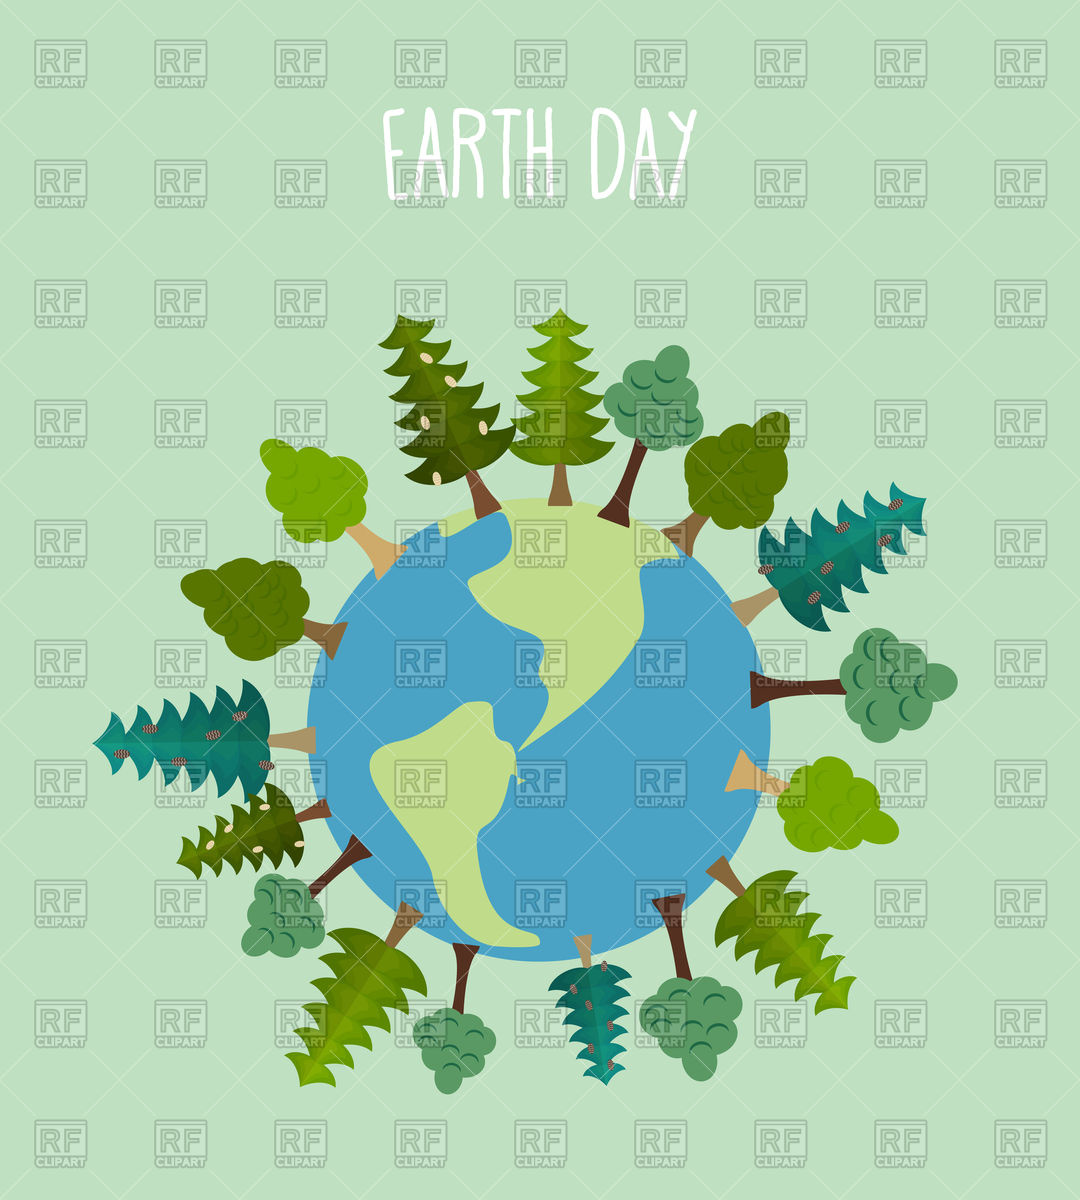 Earth day. Earth with trees. Stock Vector Image.